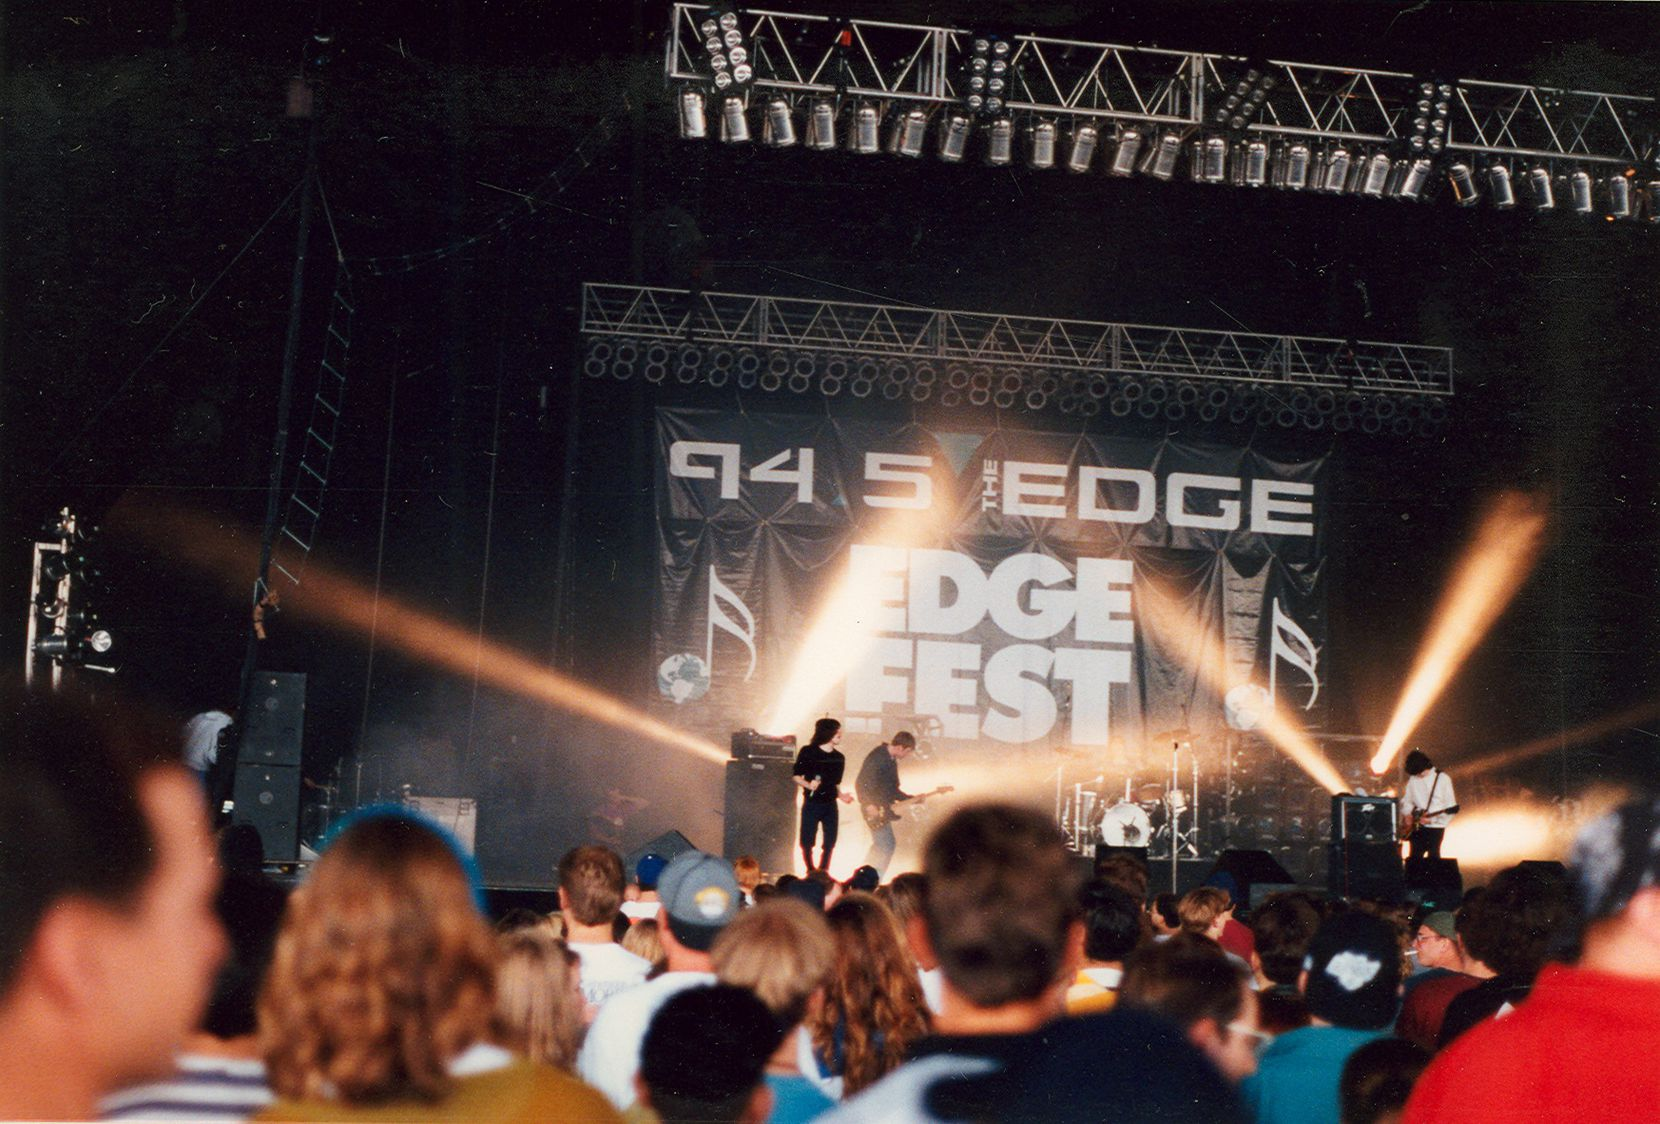 The Charlatans at EdgeFest. The good ol' days.